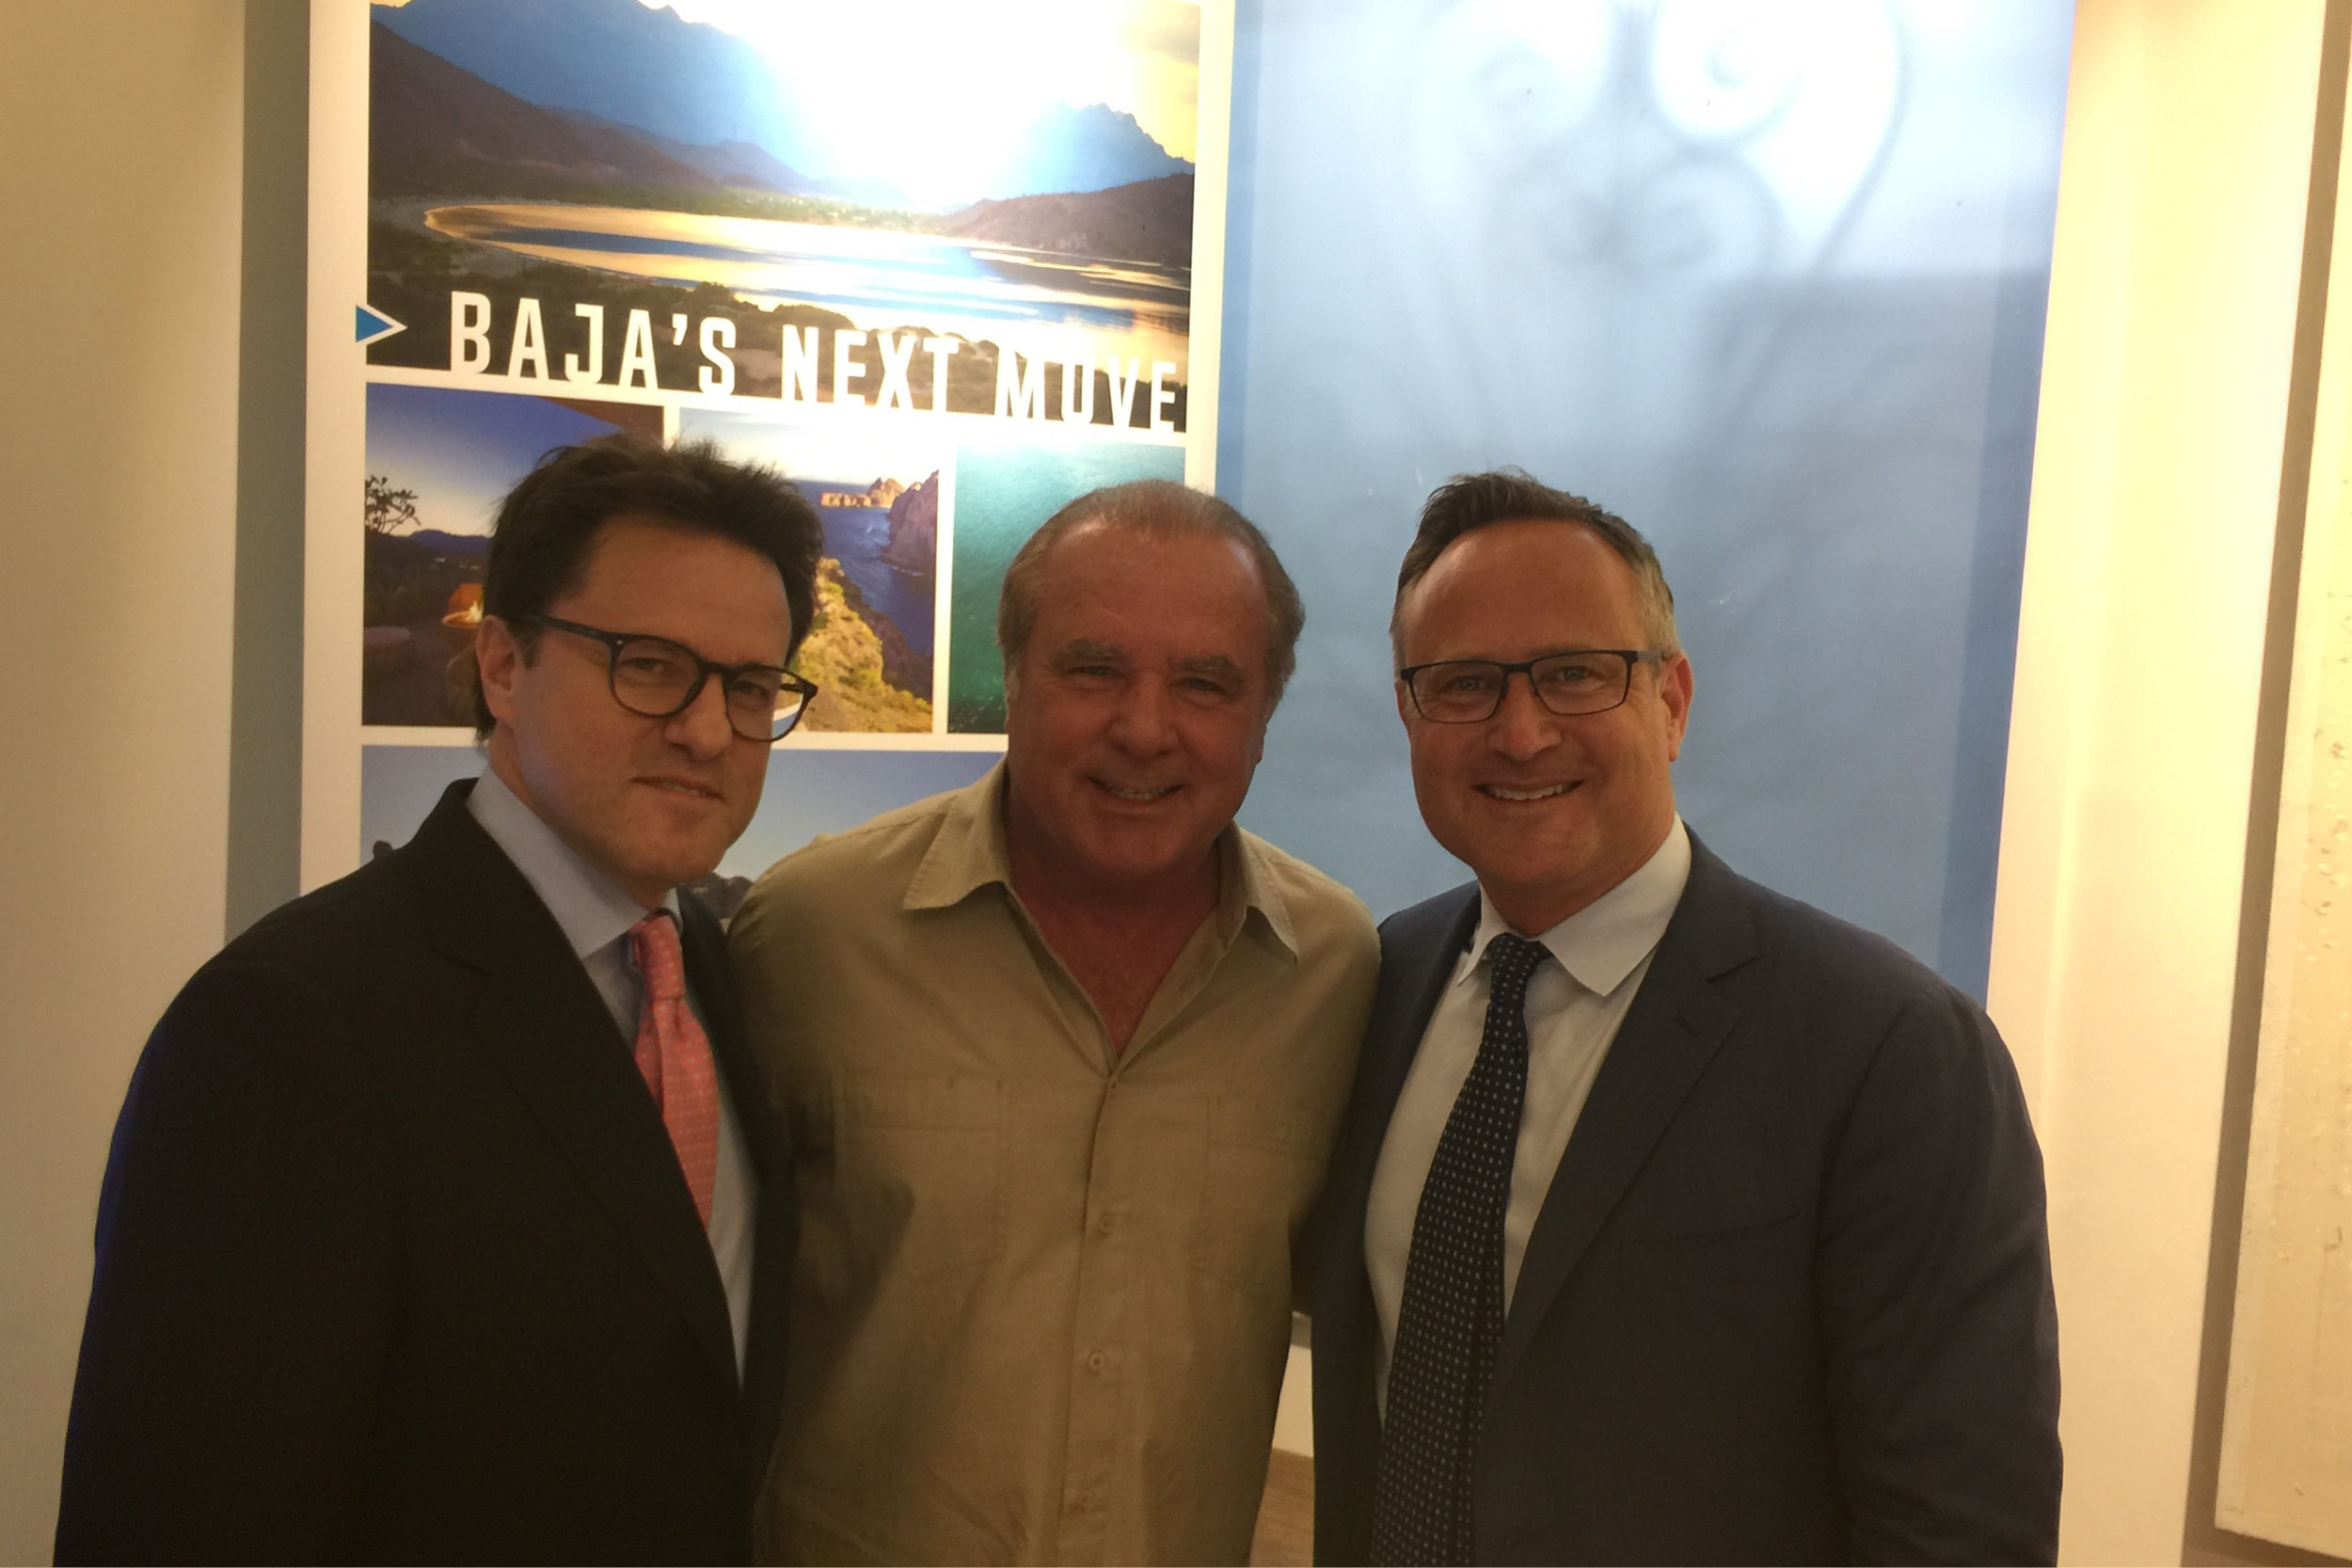 Above (from left): Carlos González, Chairman & CEO, Mexico Sotheby's International Realty; Owen Perry, Founder The Villa Group & President Danzante Bay Resort; Dean Jones Owner & CEO Realogics Sotheby's International Realty.